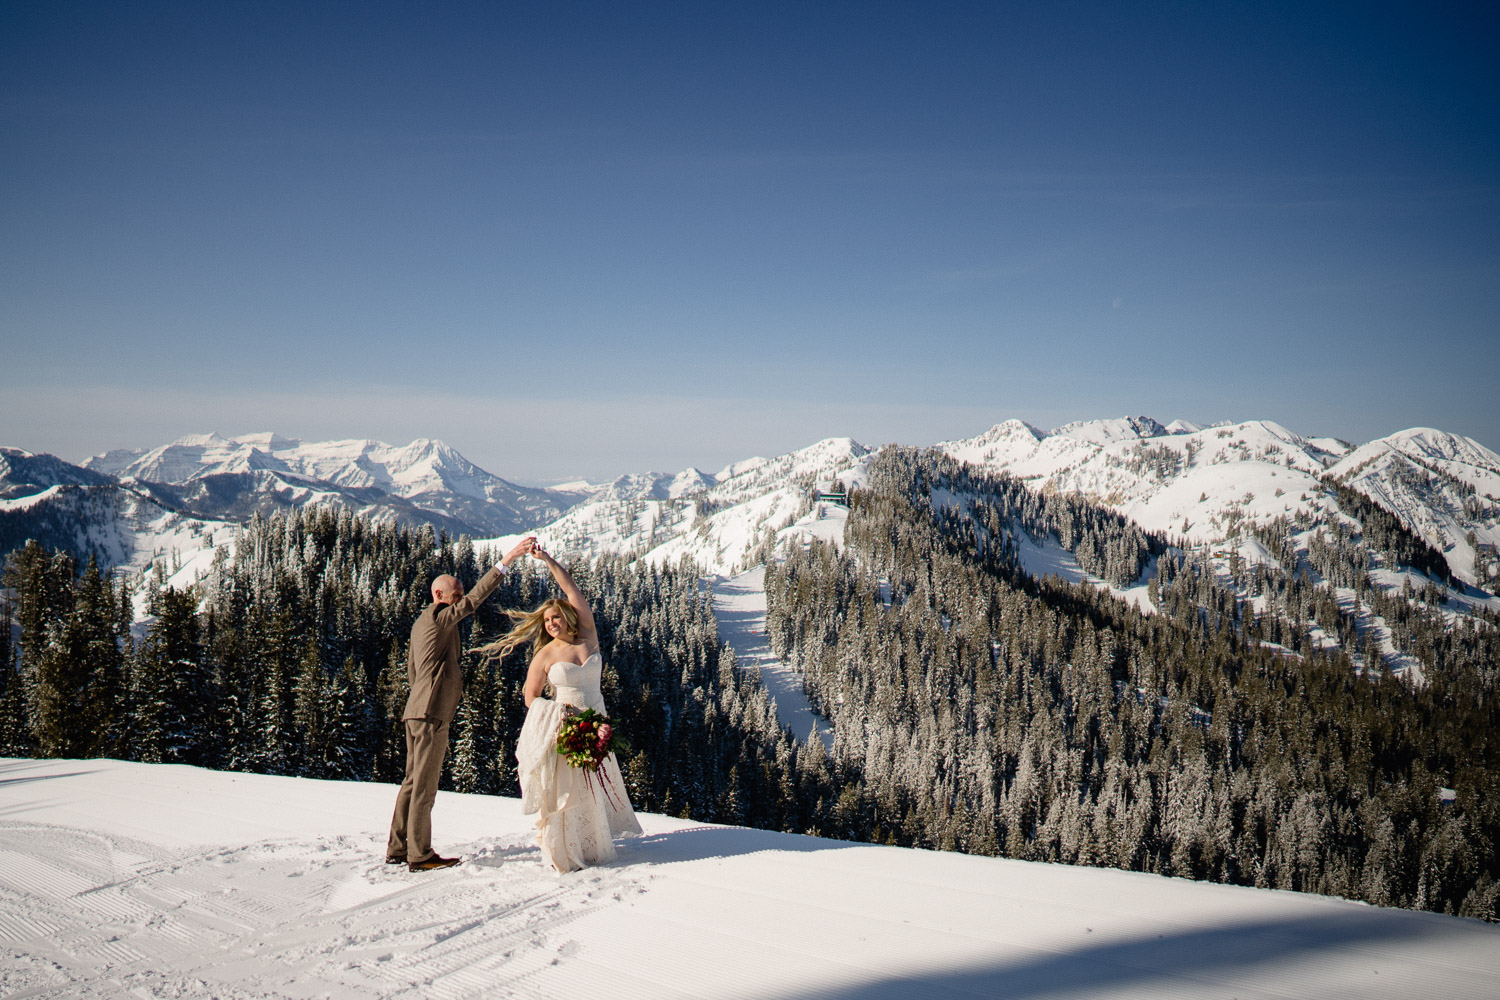 bride and groom dancing on snowy mountain with trees